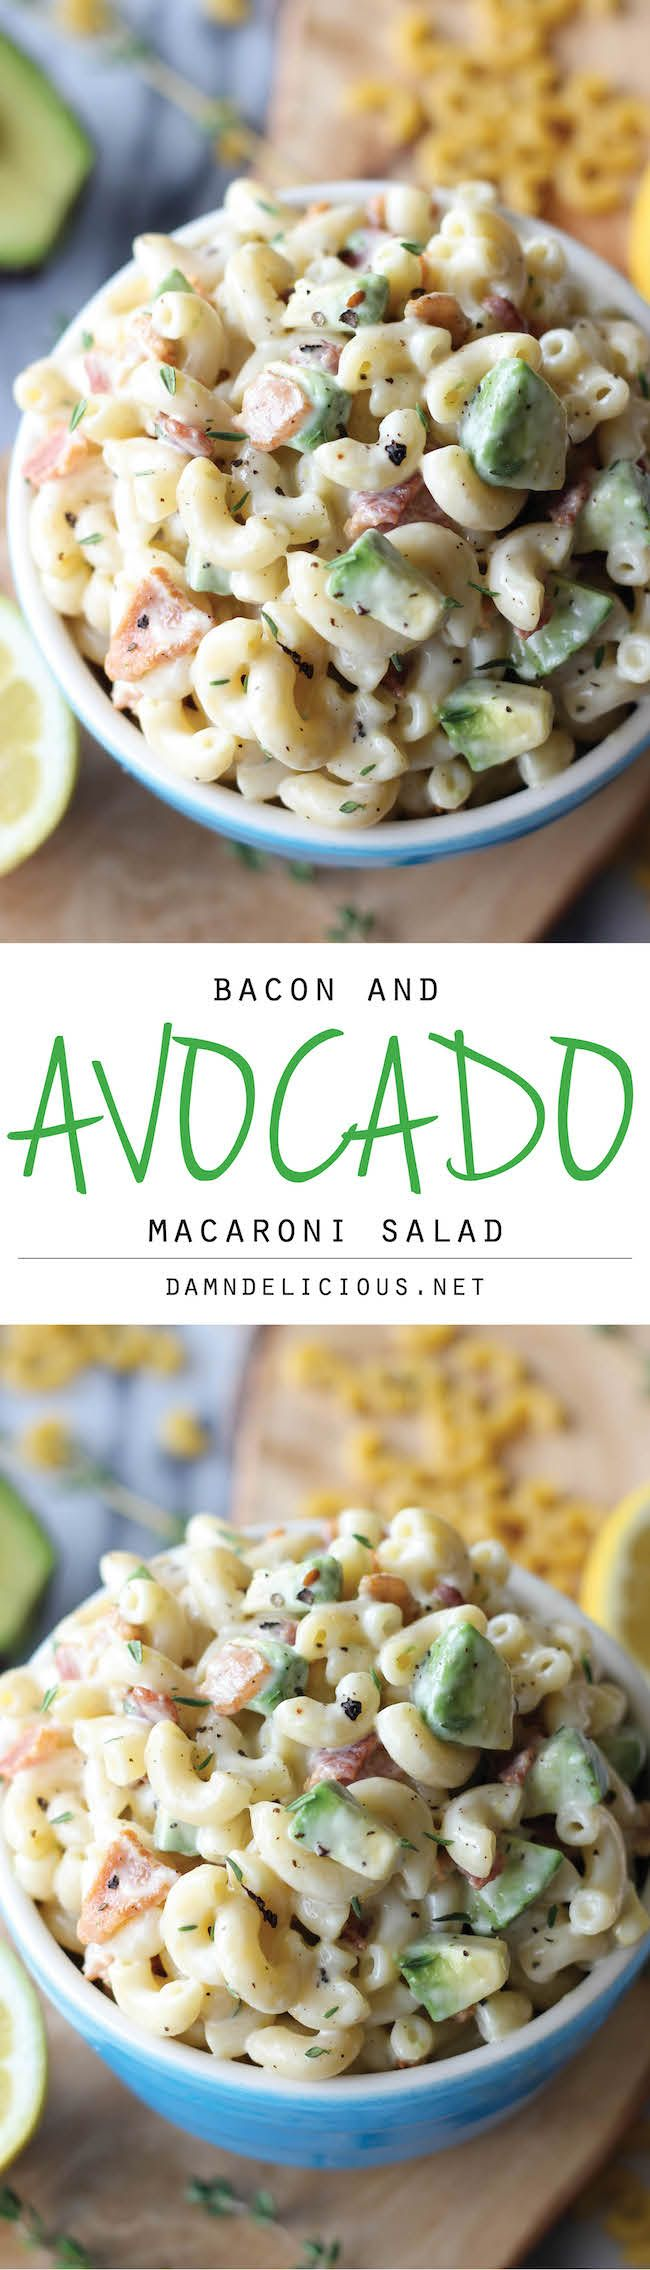 Bacon and Avocado Macaroni Salad for a crowd -- this looks pretty great! Use quinoa or sprouted-grain pasta (and, of course, nitrate-free turkey bacon, safflower mayo, and sub xylitol or stevia for the sugar in the dressing). Serves 12 as a side dish for Phase 3.